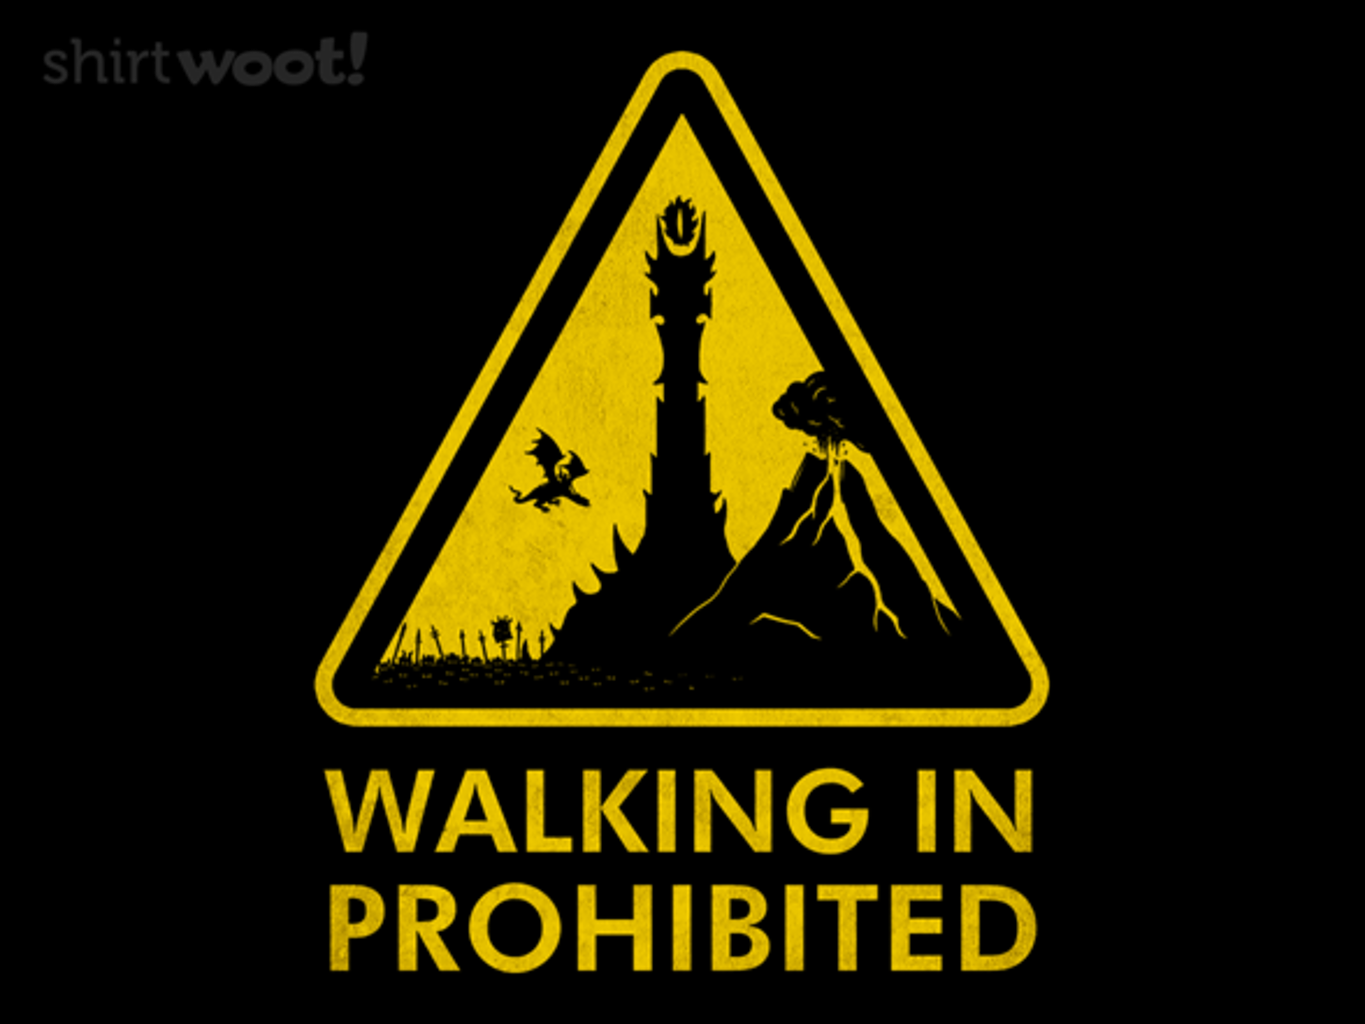 Woot!: WALKING IN PROHIBITED